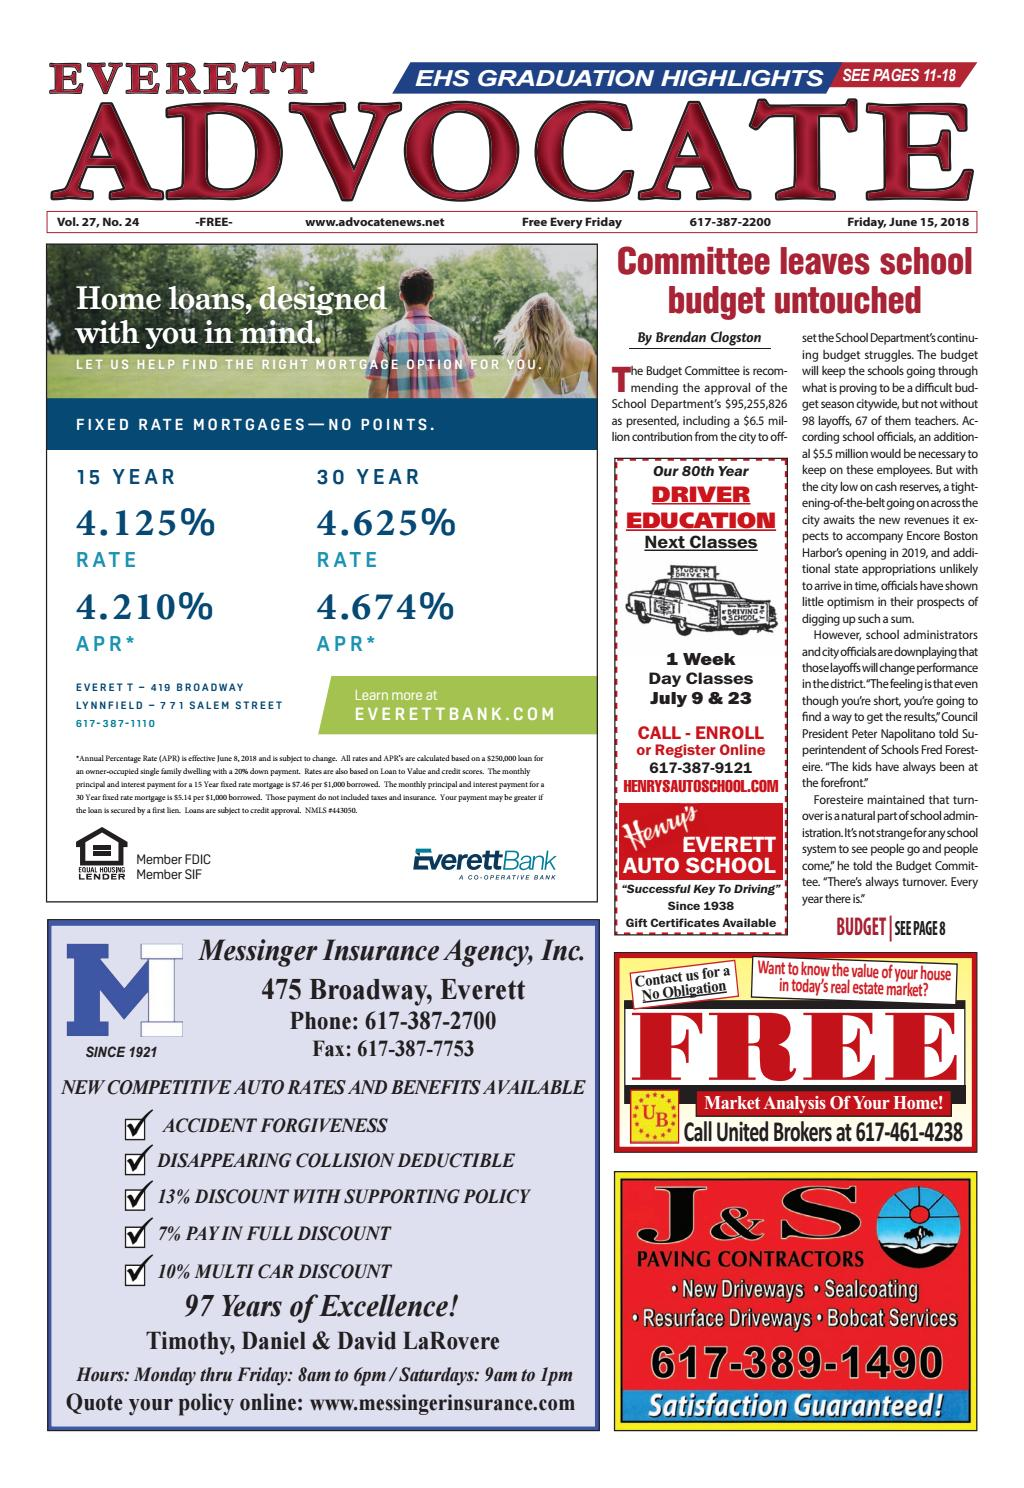 THE EVERETT ADVOCATE Friday June 15 2018 By Mike Kurov Issuu